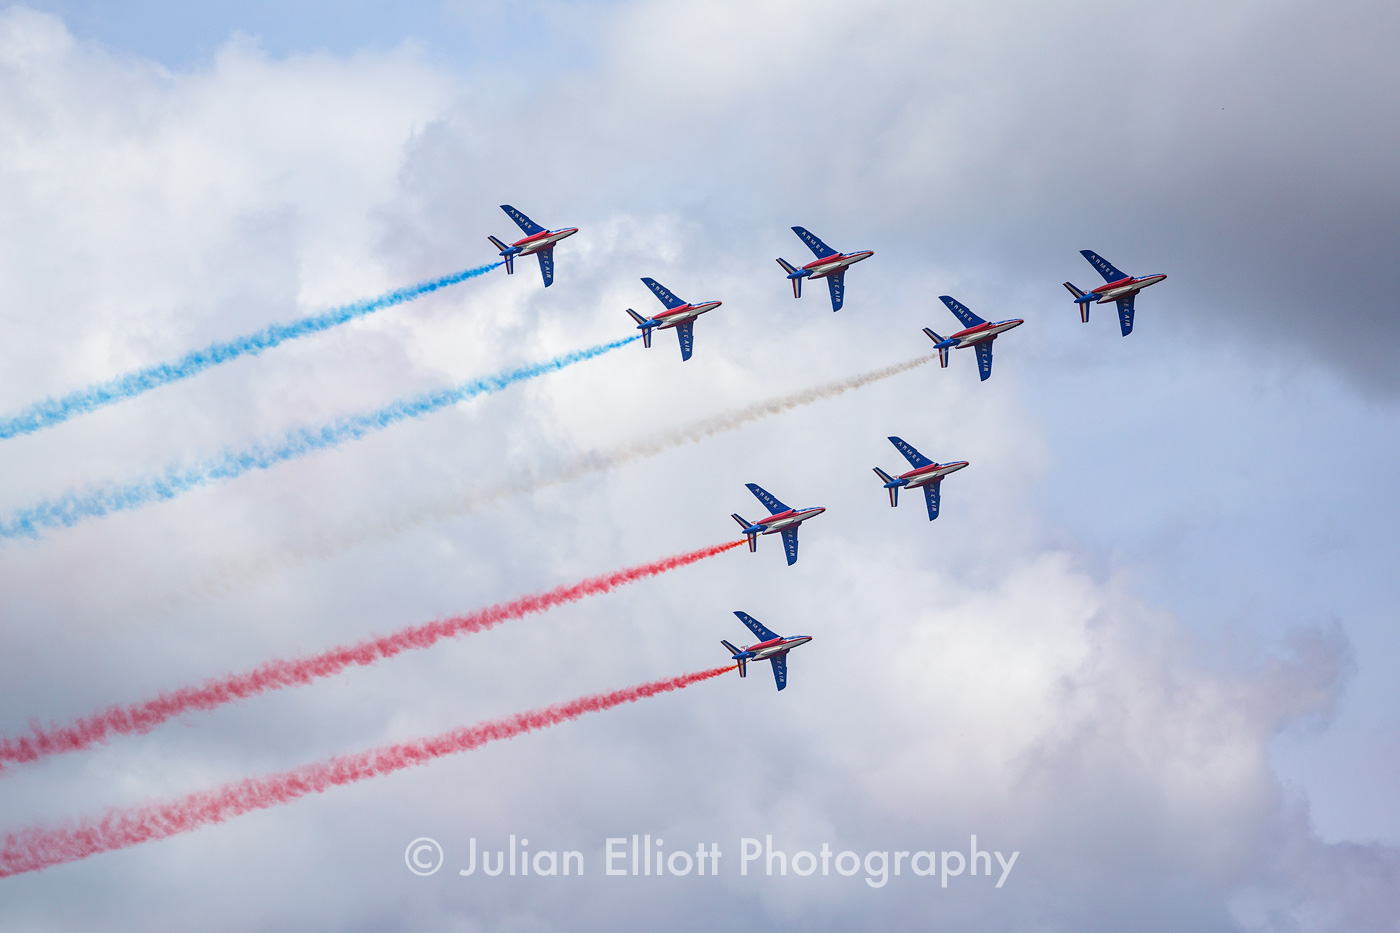 Jets from the Patrouille de France